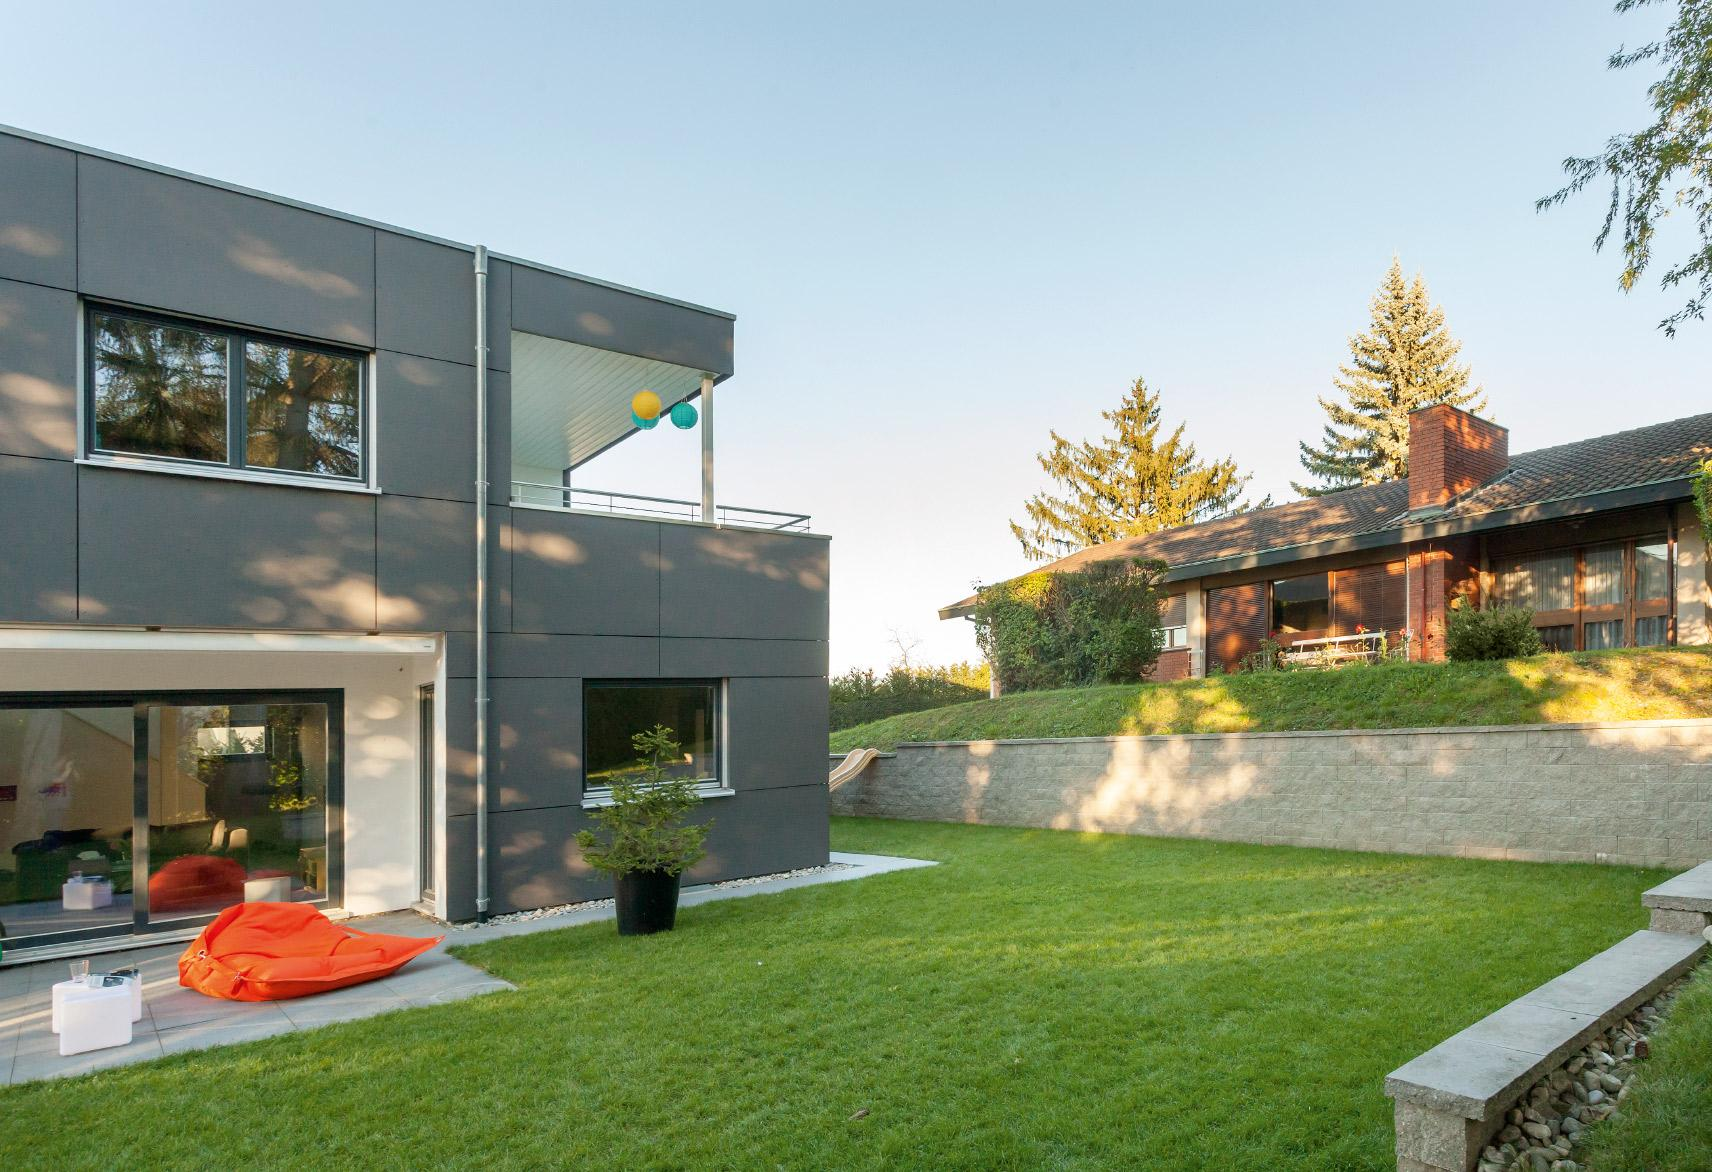 Modern detached house in Bauhaus style